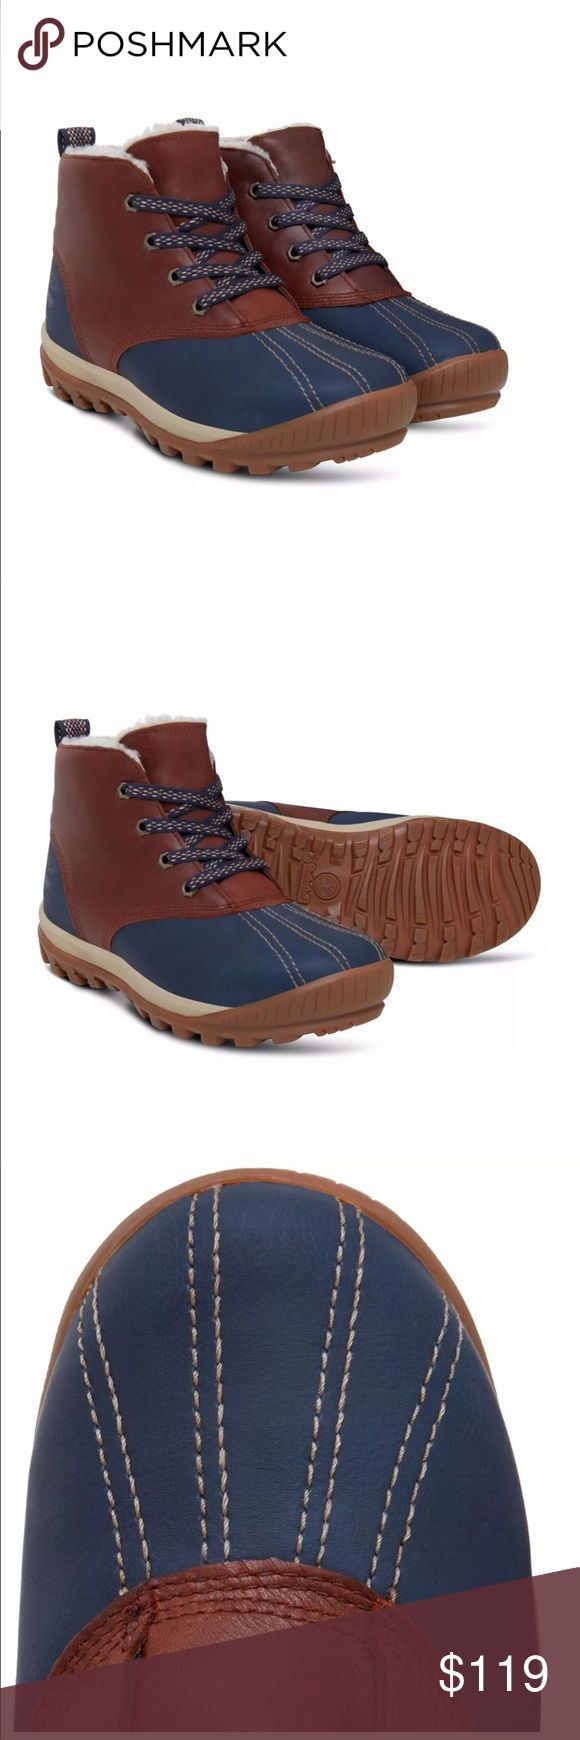 Timberland Women's Boots Timberland Women's MT. Hayes Waterproof Leather Brown Chukka Boots A1631 Timberland Shoes Winter & Rain Boots